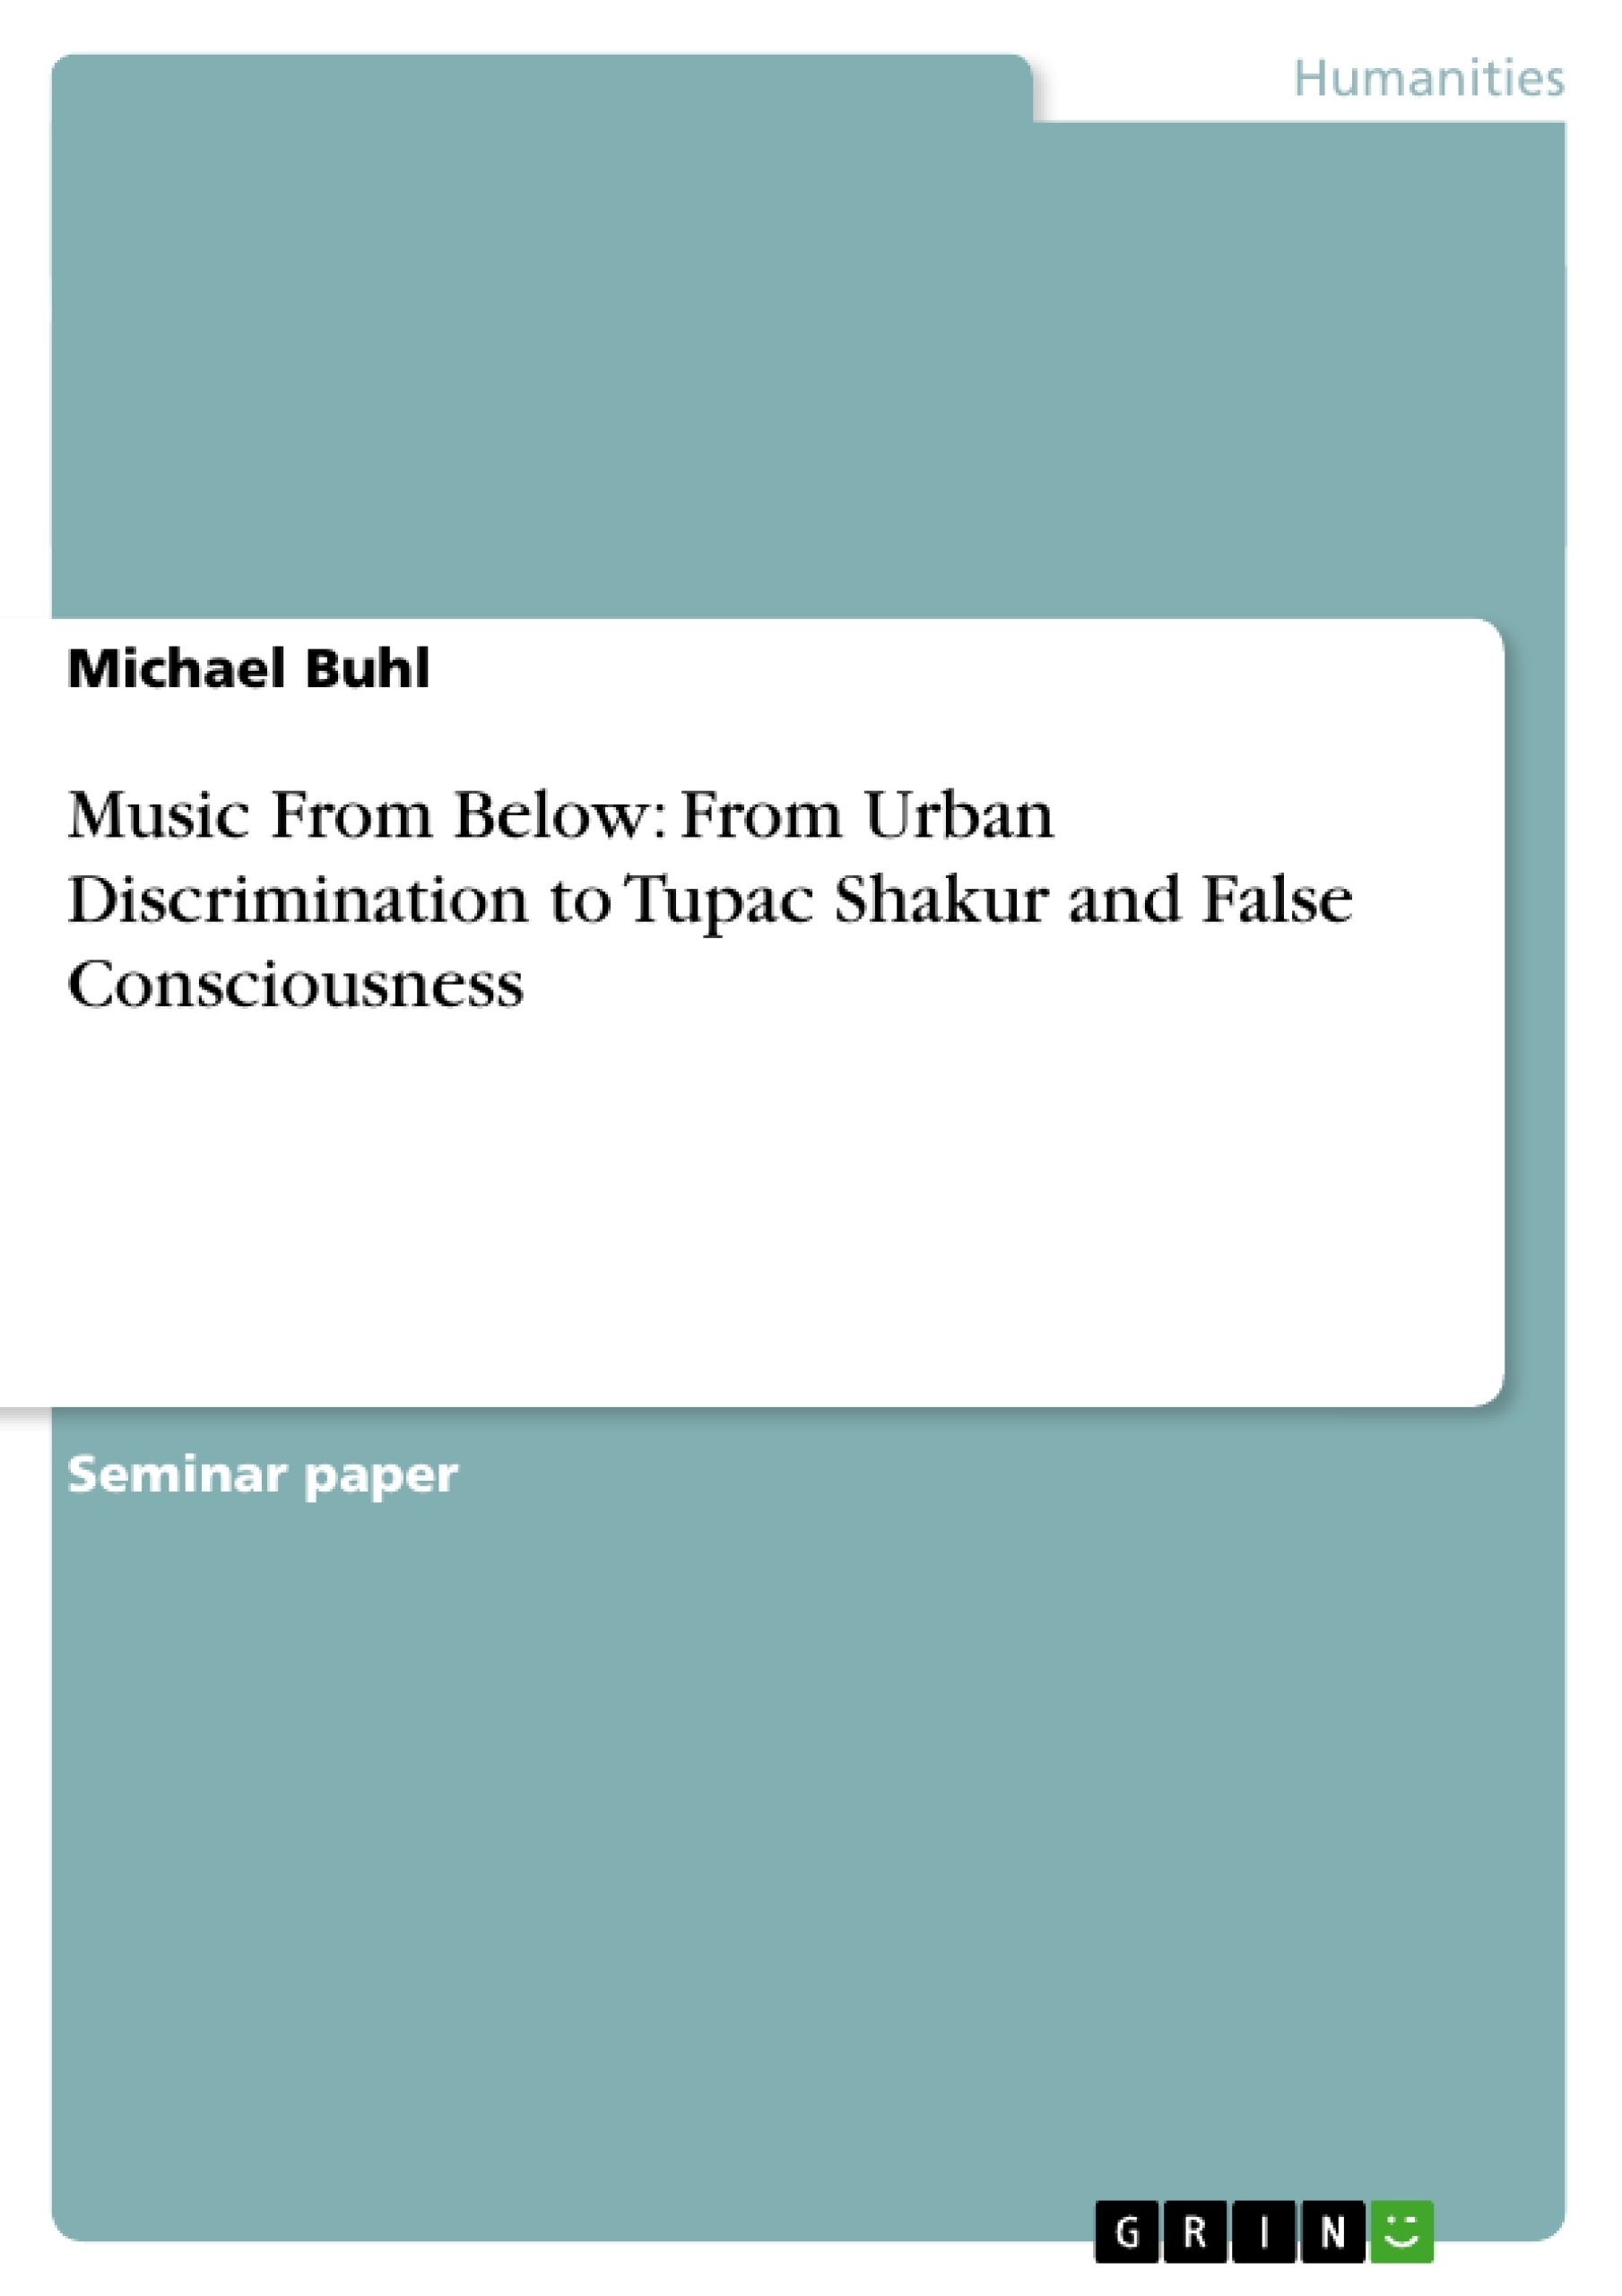 Title: Music From Below: From Urban Discrimination to Tupac Shakur and False Consciousness